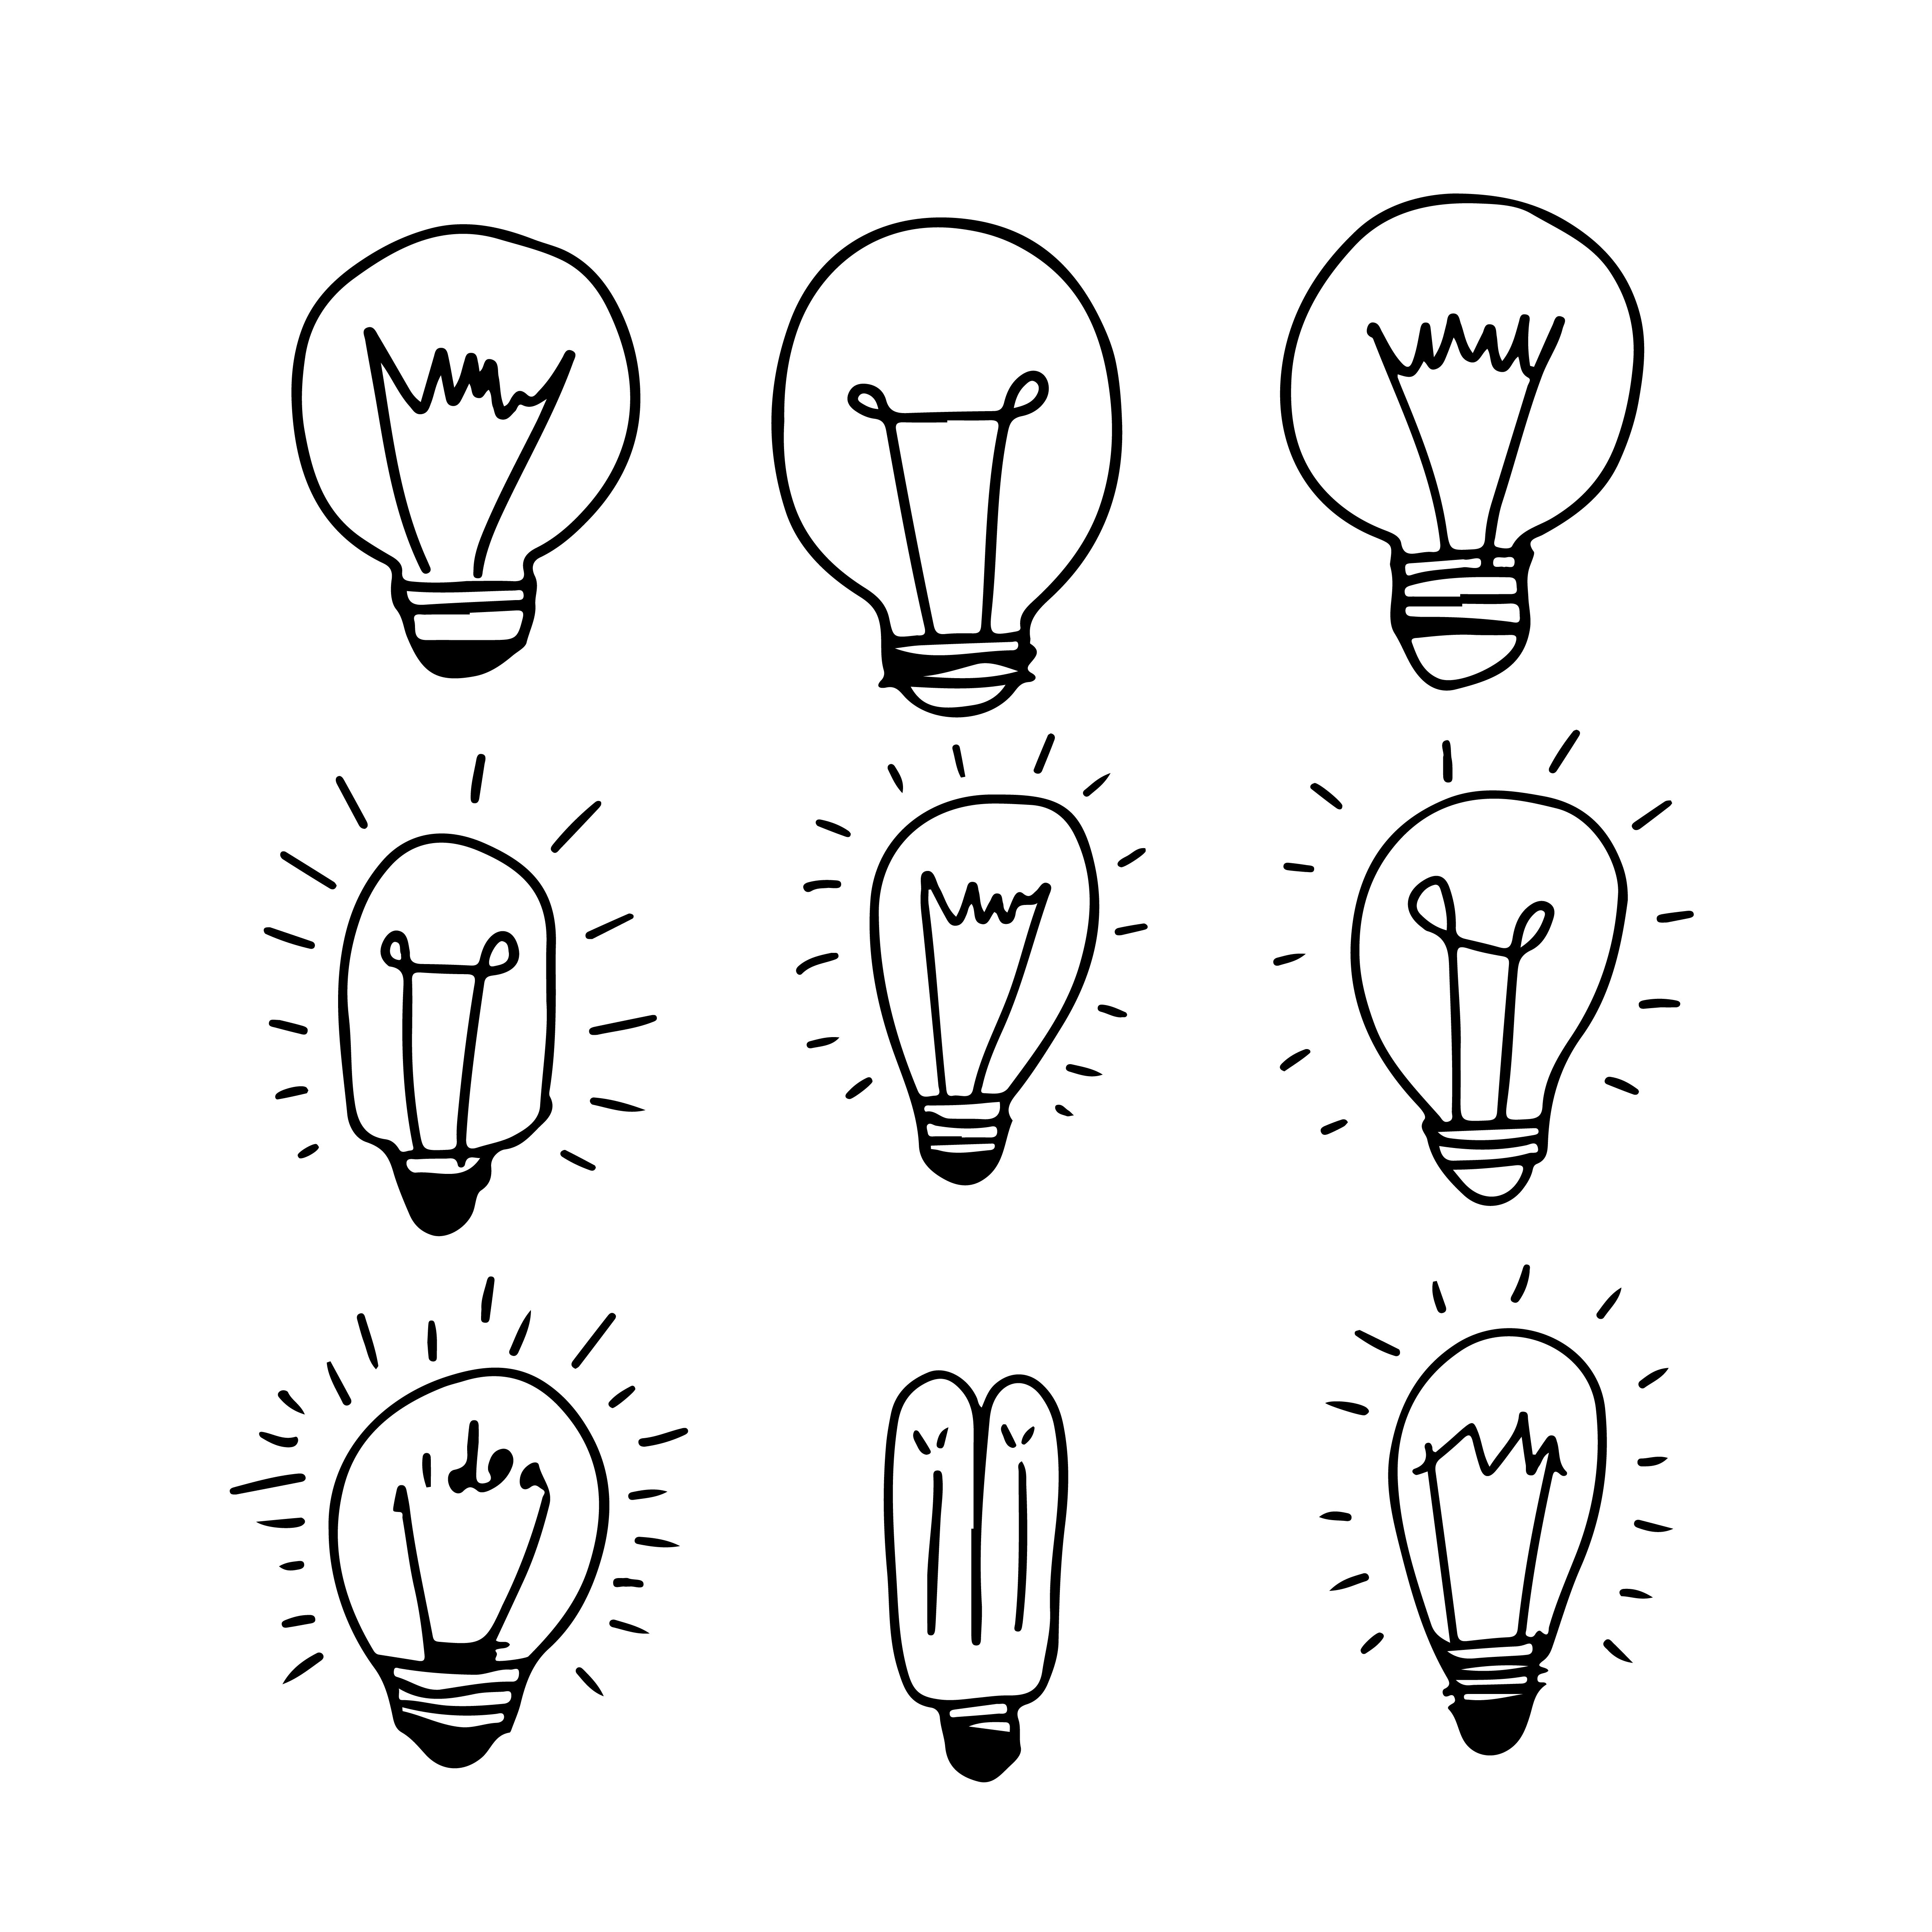 Hand drawn light bulb icon How to draw hands, Light bulb